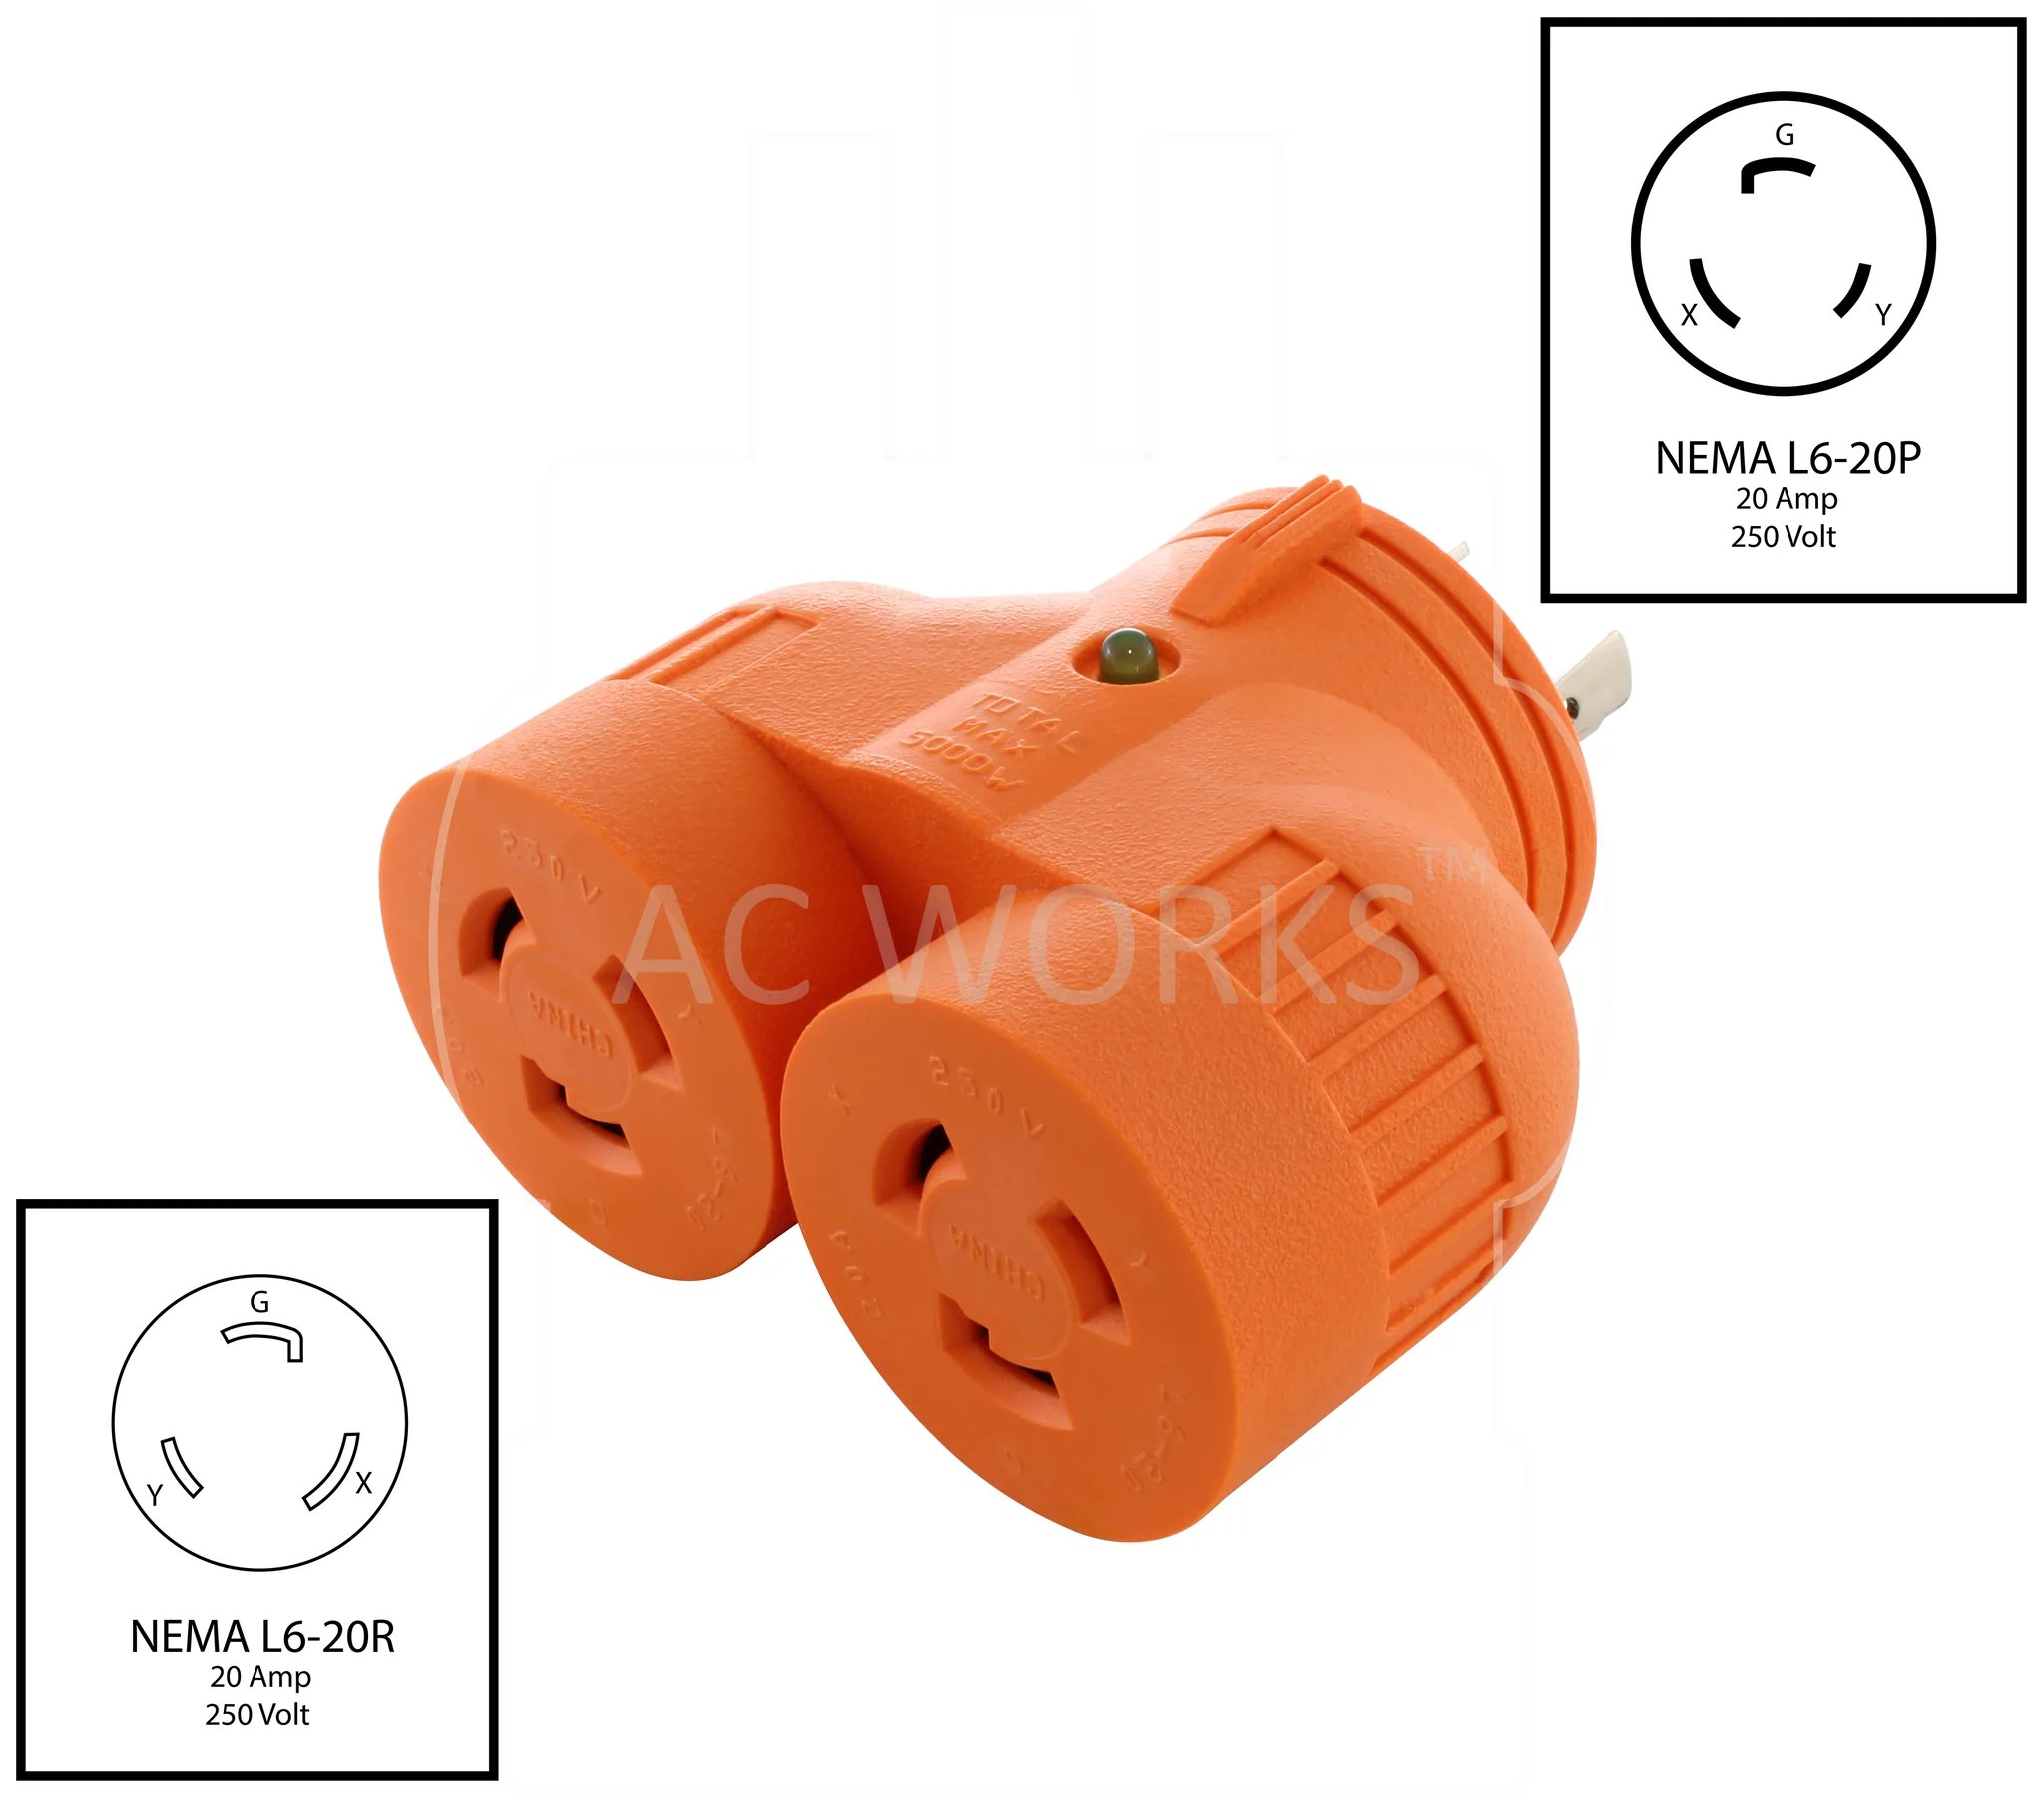 small resolution of  nema l6 20p to nema l6 20r l620 plug to 2 l620 connectors